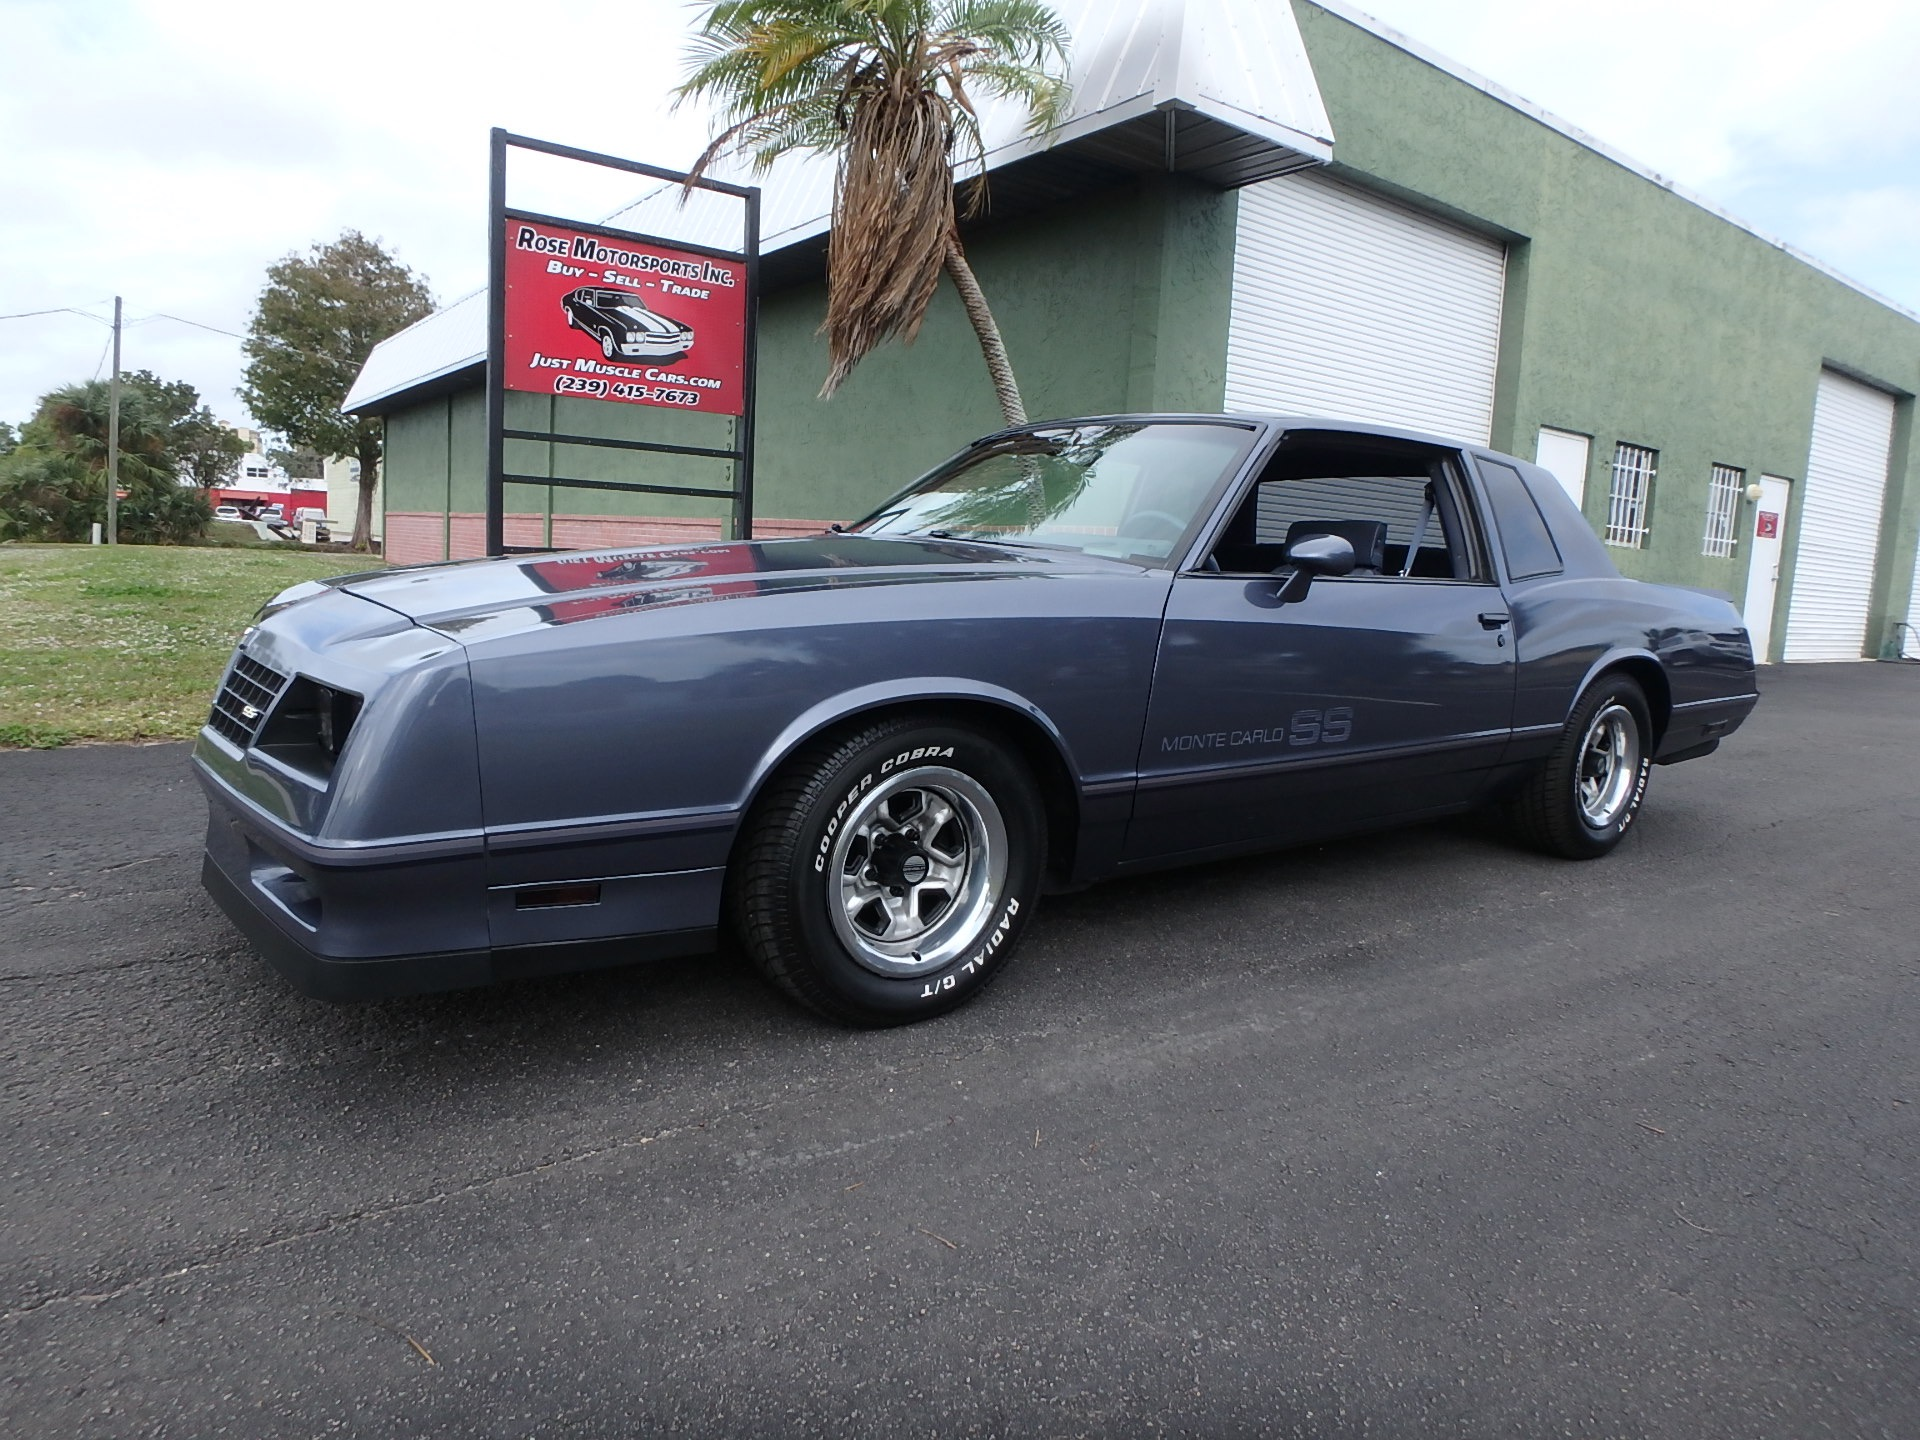 used 1984 chevy monte carlo ss for sale 13 900 rose motorsports inc stock 2421 used 1984 chevy monte carlo ss for sale